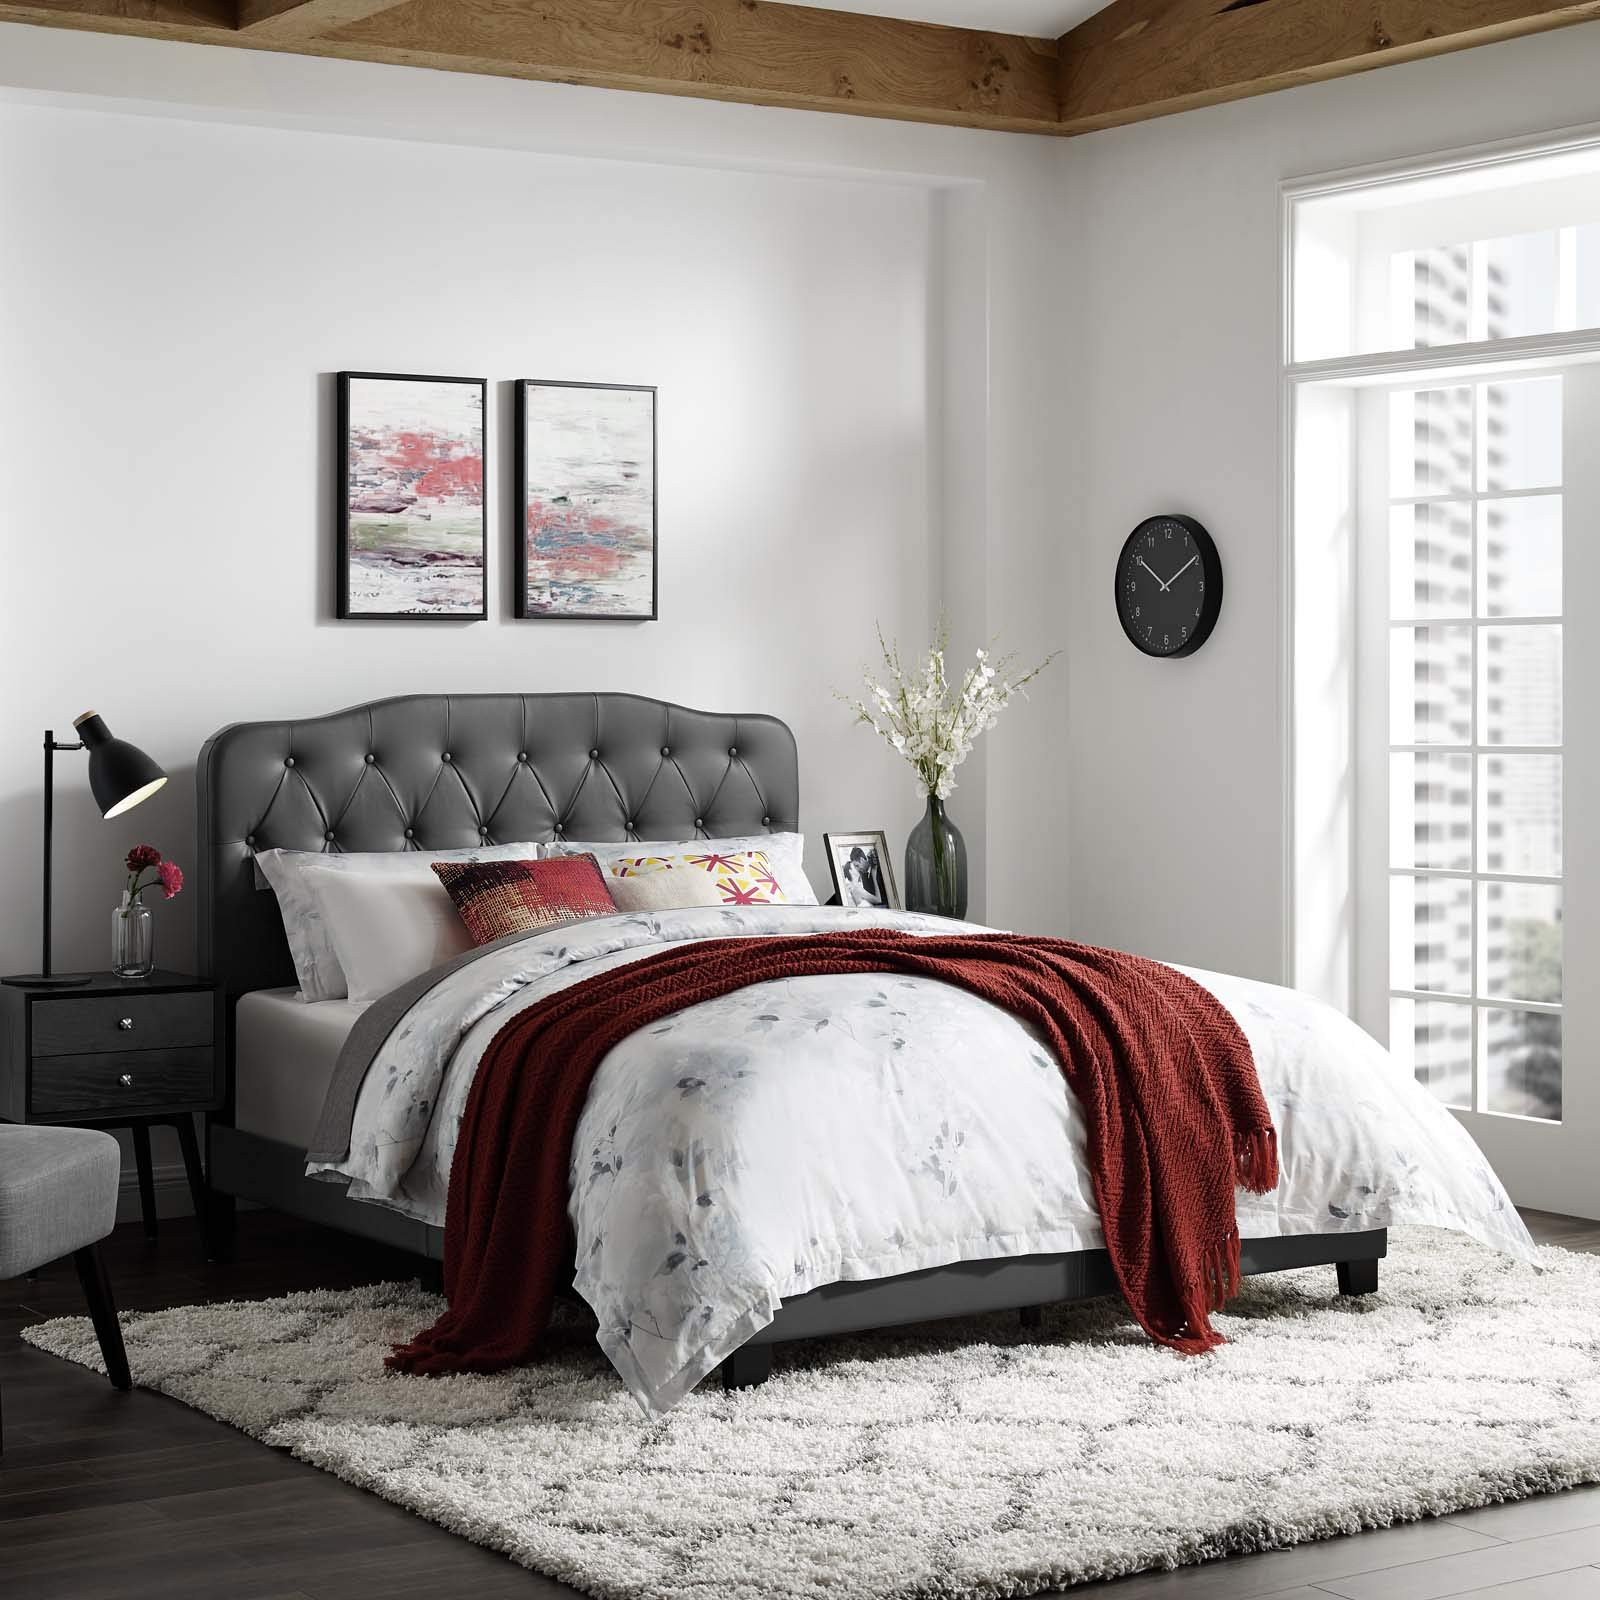 Modway MOD-5990-GRY Amelia Twin Faux Leather Bed, Gray